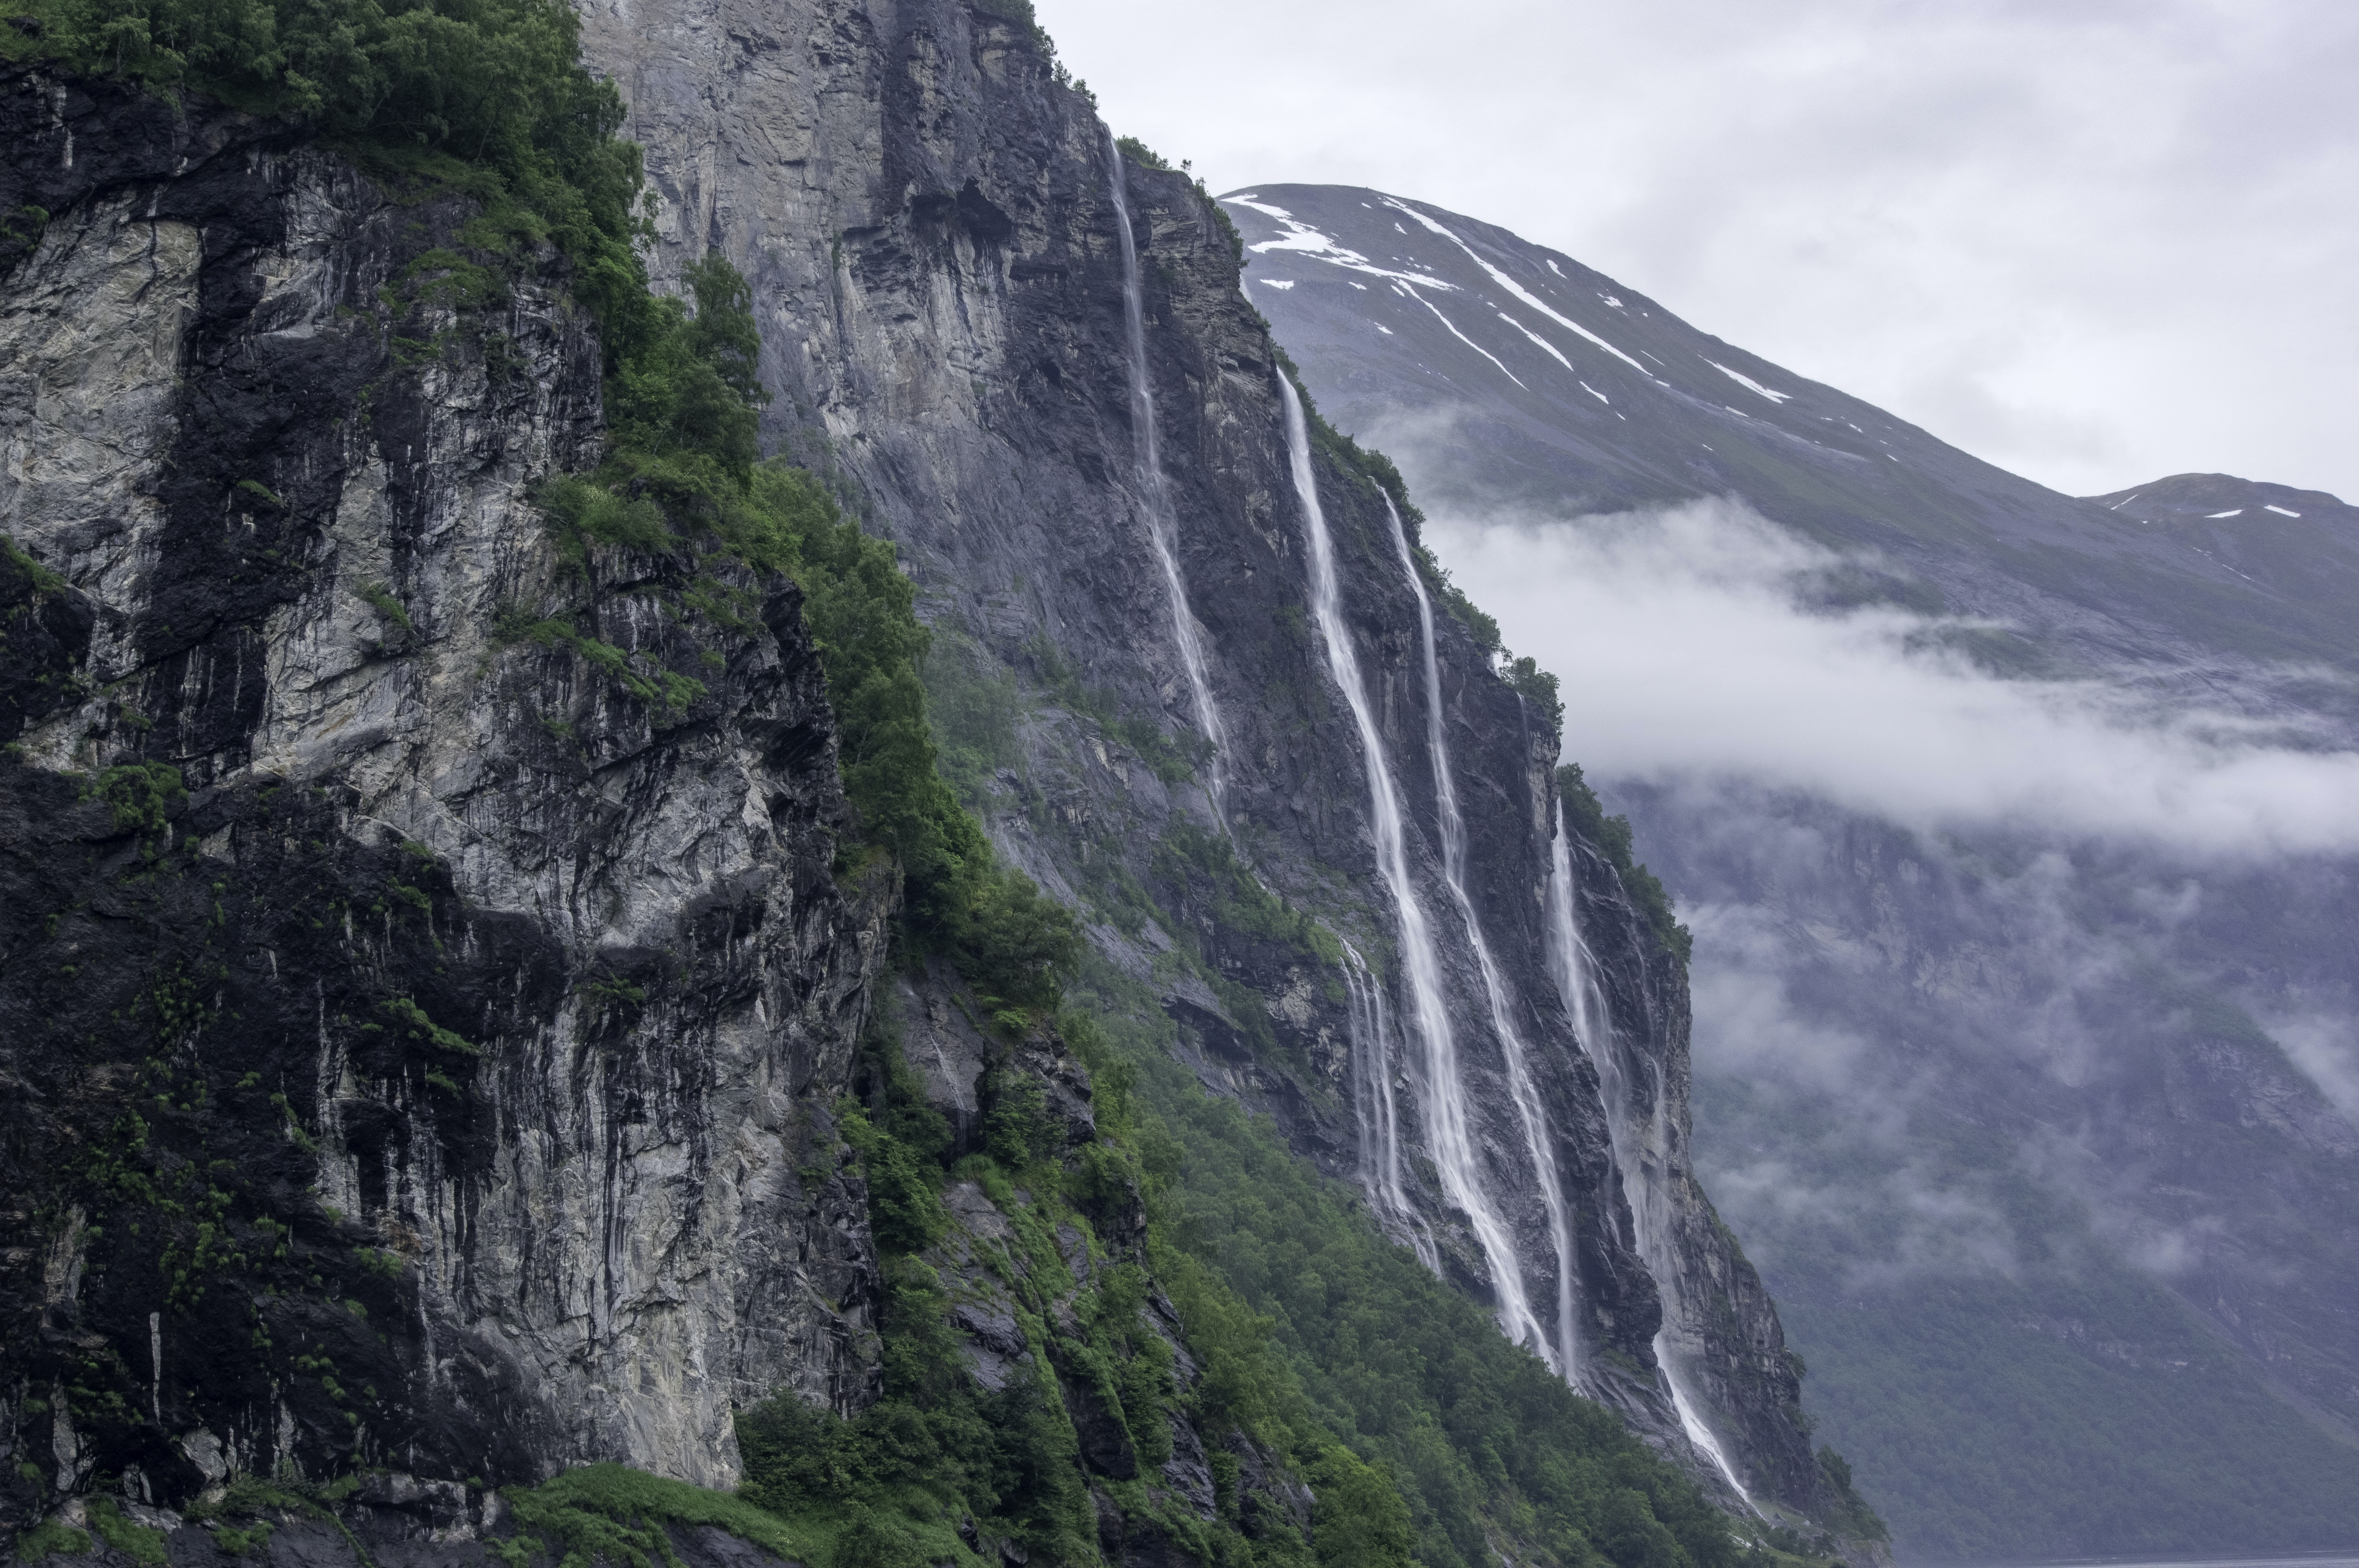 Mountainsides with waterfalls and lush greenery in Geirangerfjord